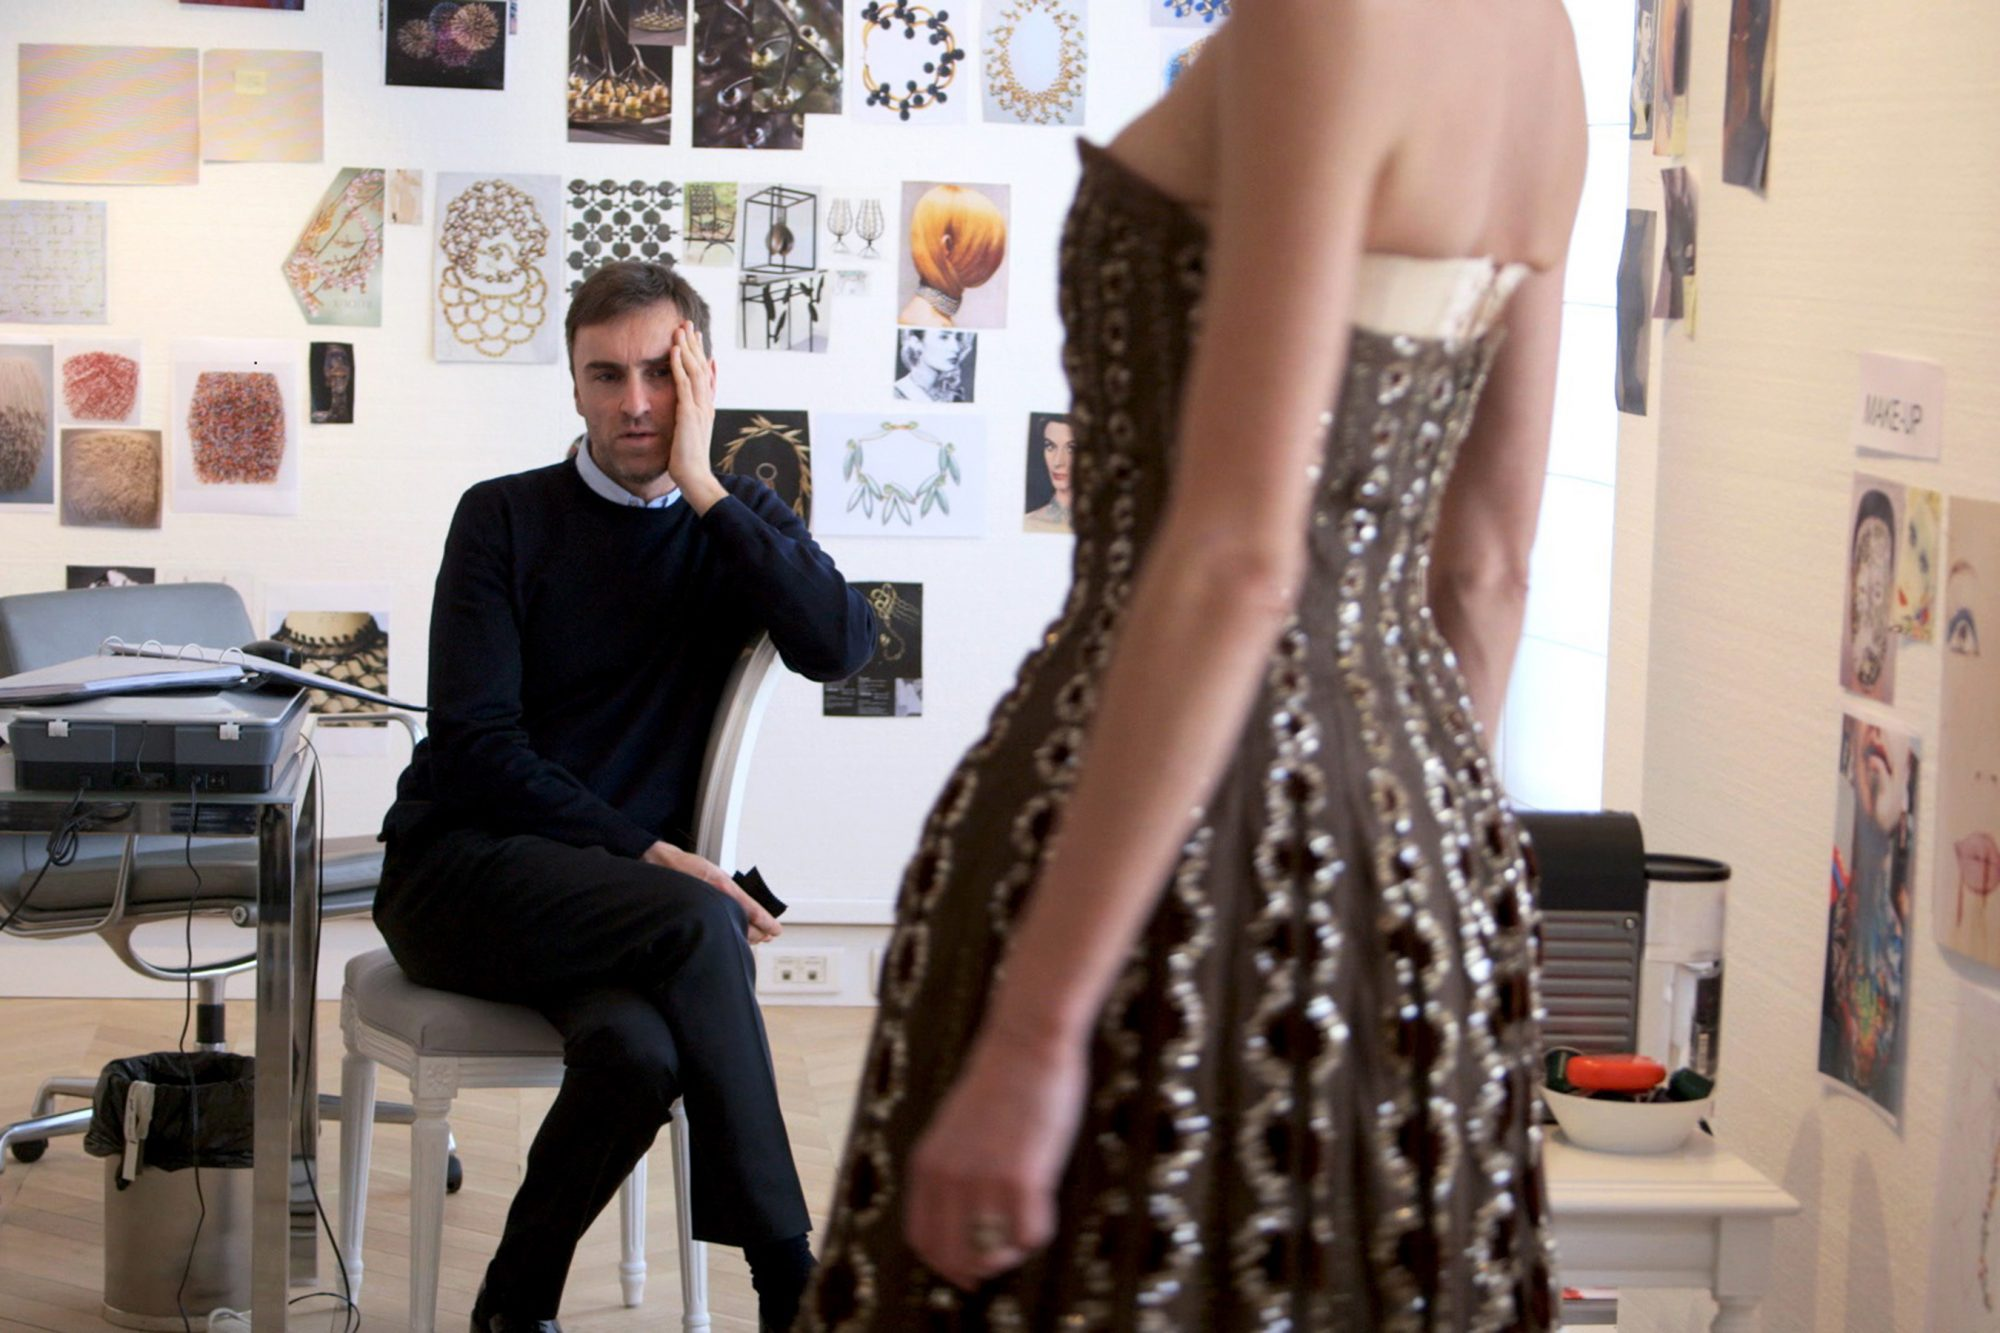 DIOR AND I, Raf Simons, 2014. ©The Orchard/courtesy Everett Collection